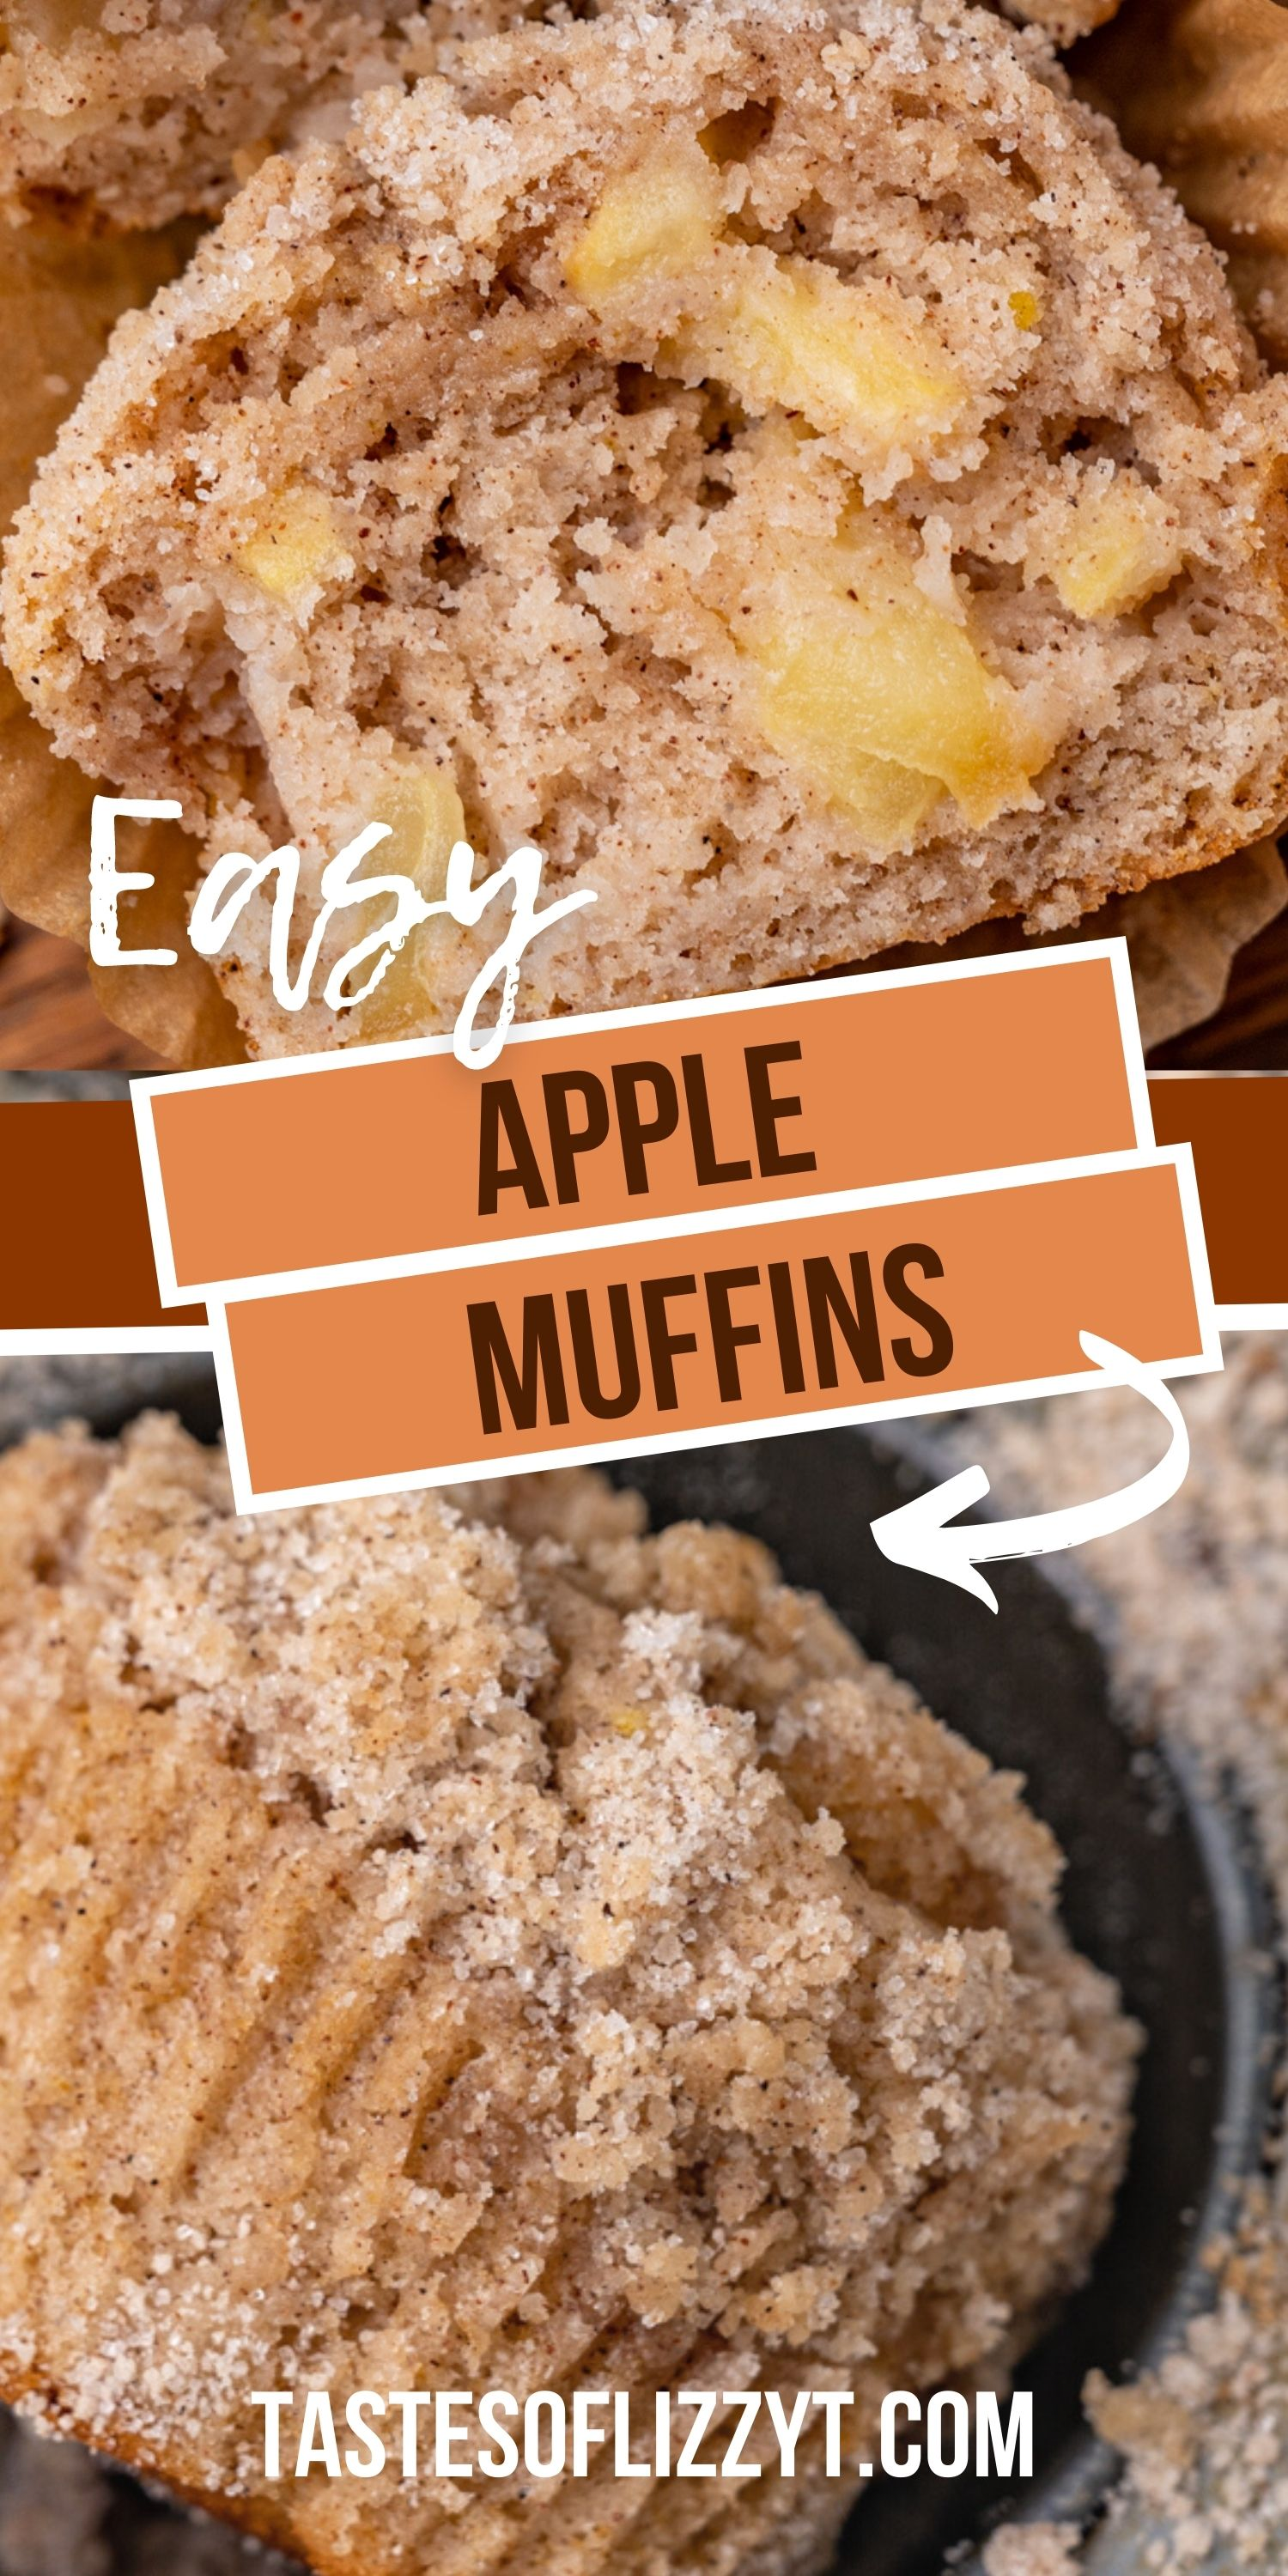 Soft apple muffins loaded with cinnamon flavor and a buttery streusel baked on top. These are delicious warm or served the next day since they are so tender. via @tastesoflizzyt